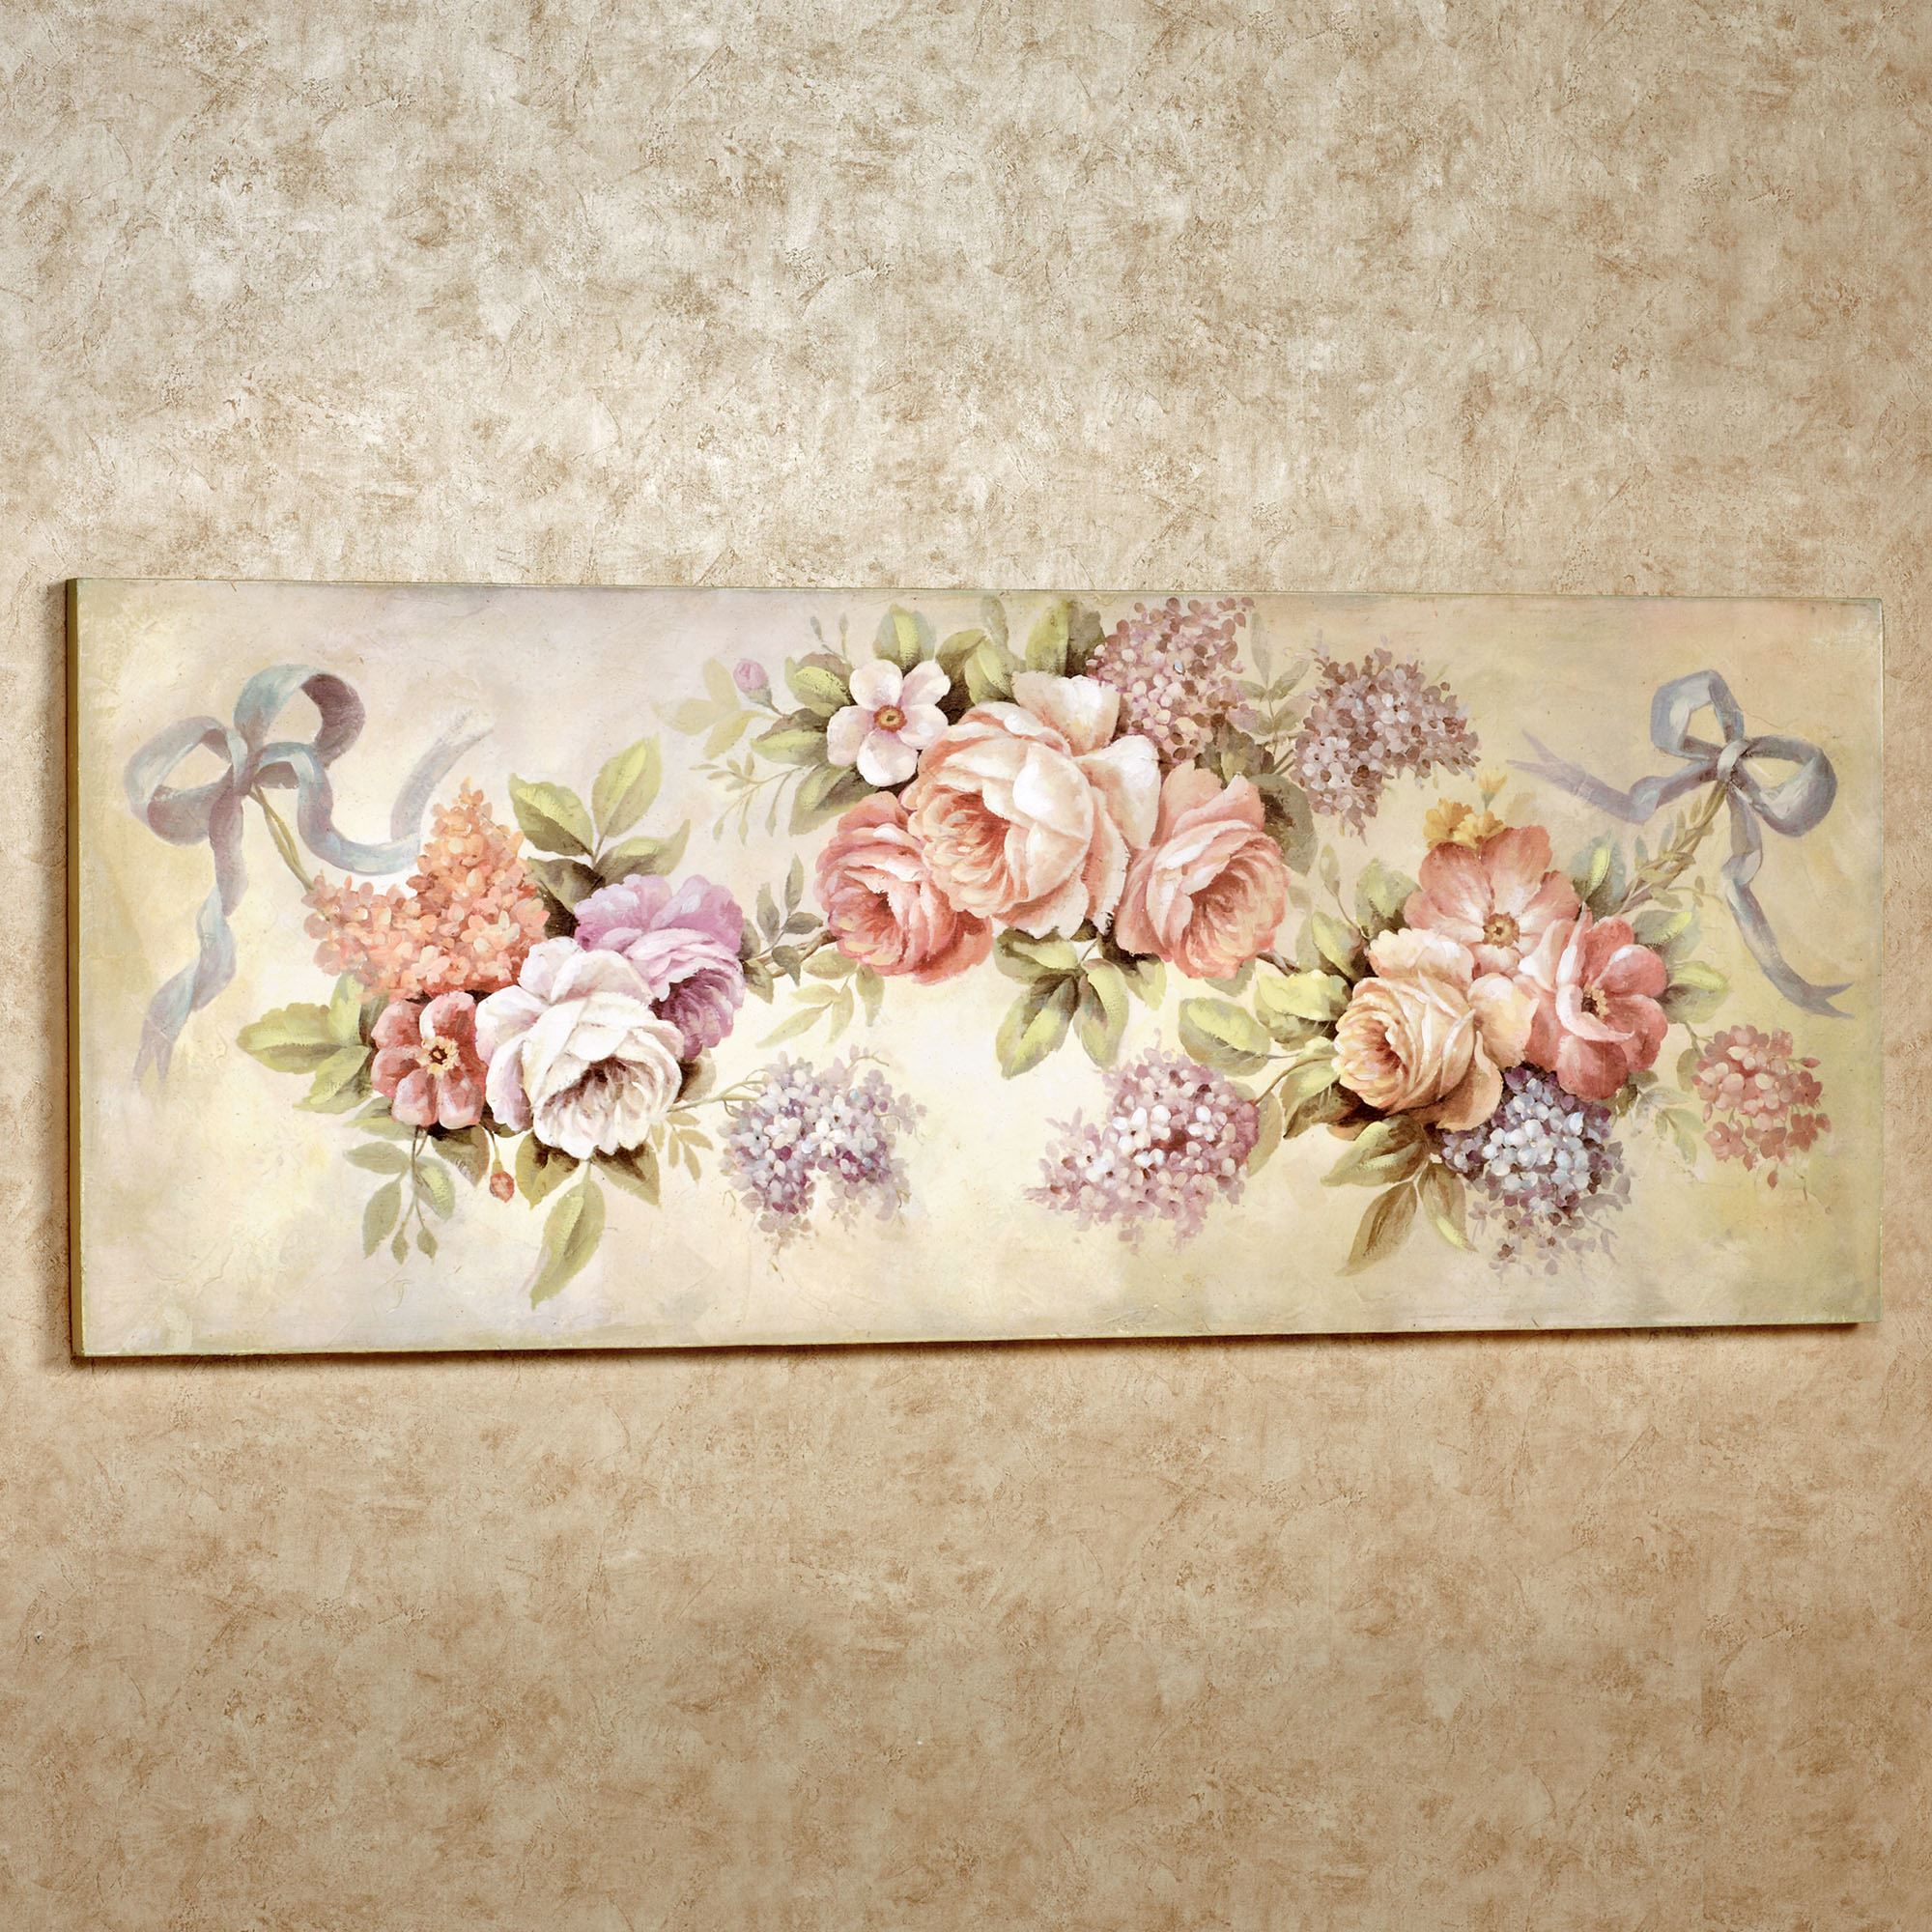 Floral Swag Wooden Wall Art Plaque